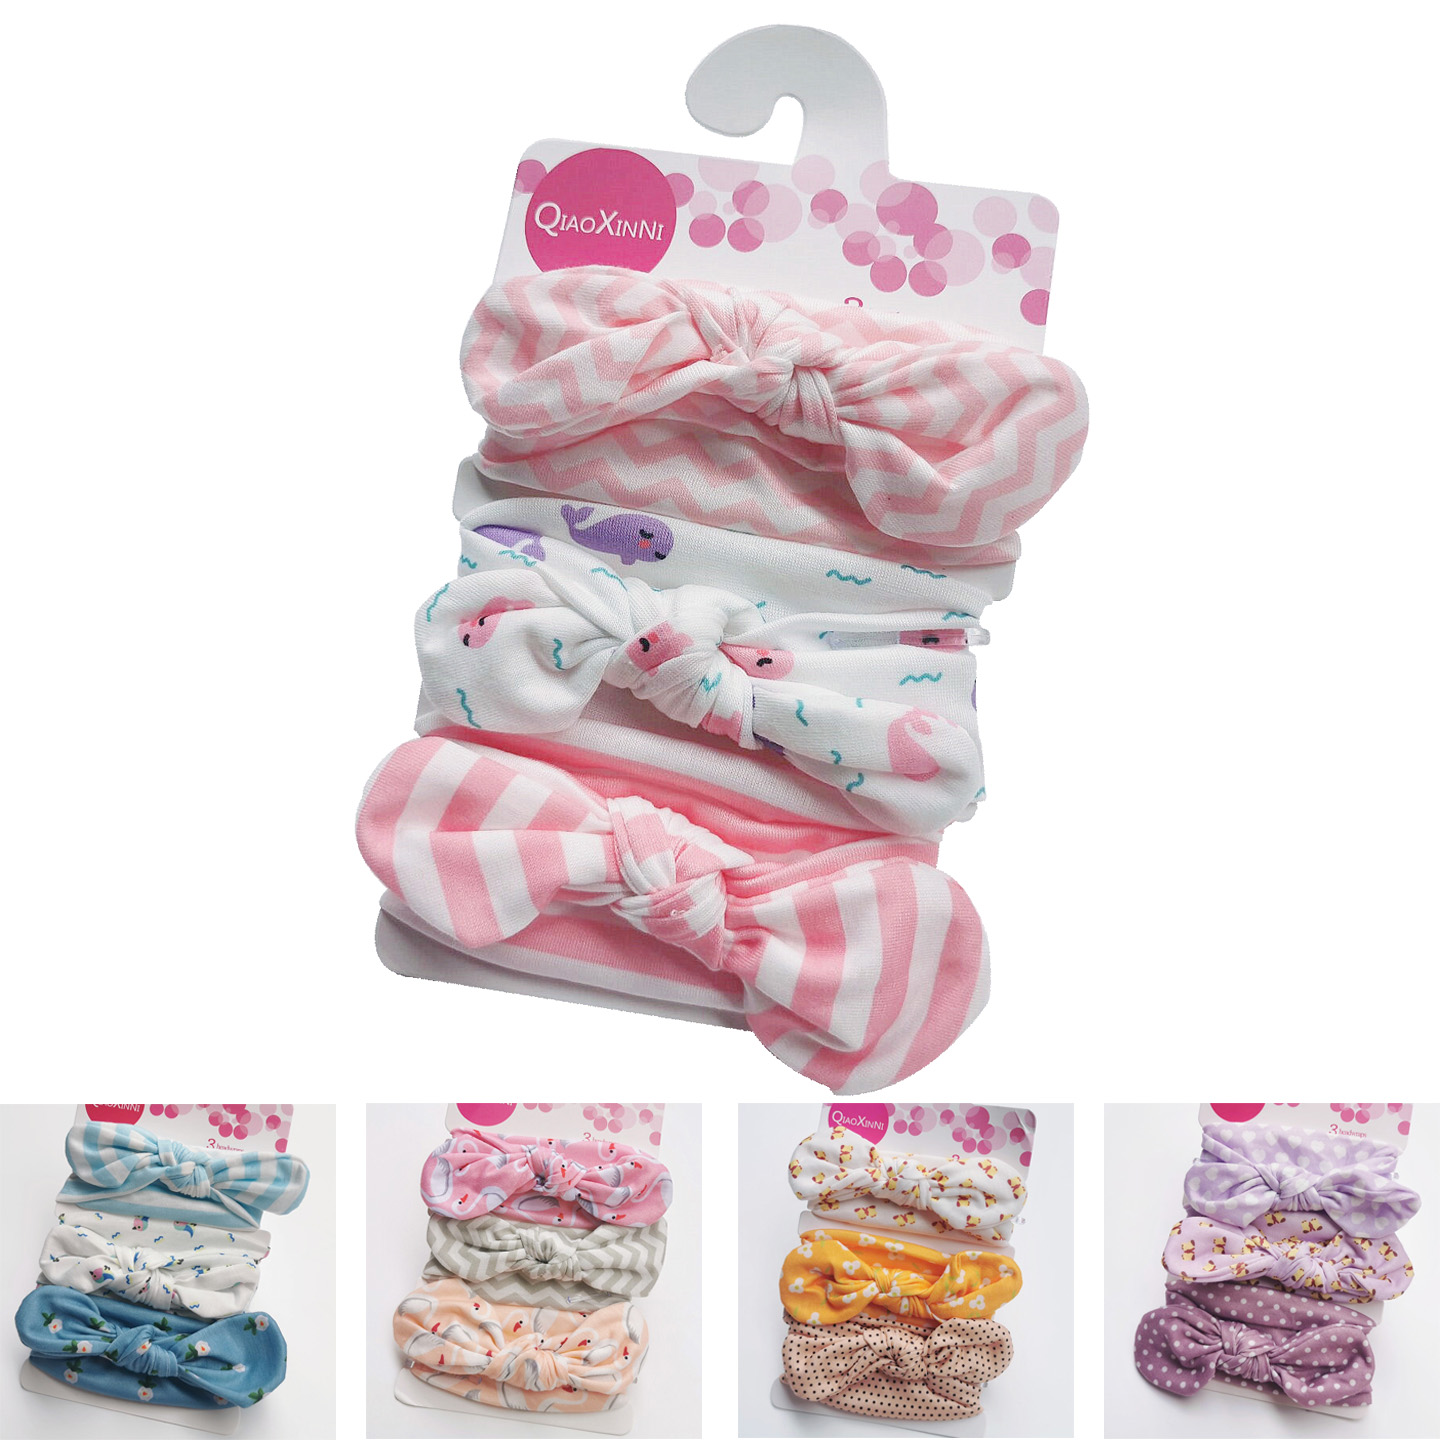 3pcs / Set Polyester Baby Headband Bow Headbands For Cute Girls Kids Hair Girls Turban Floral Hairband Children In Soft Cotton